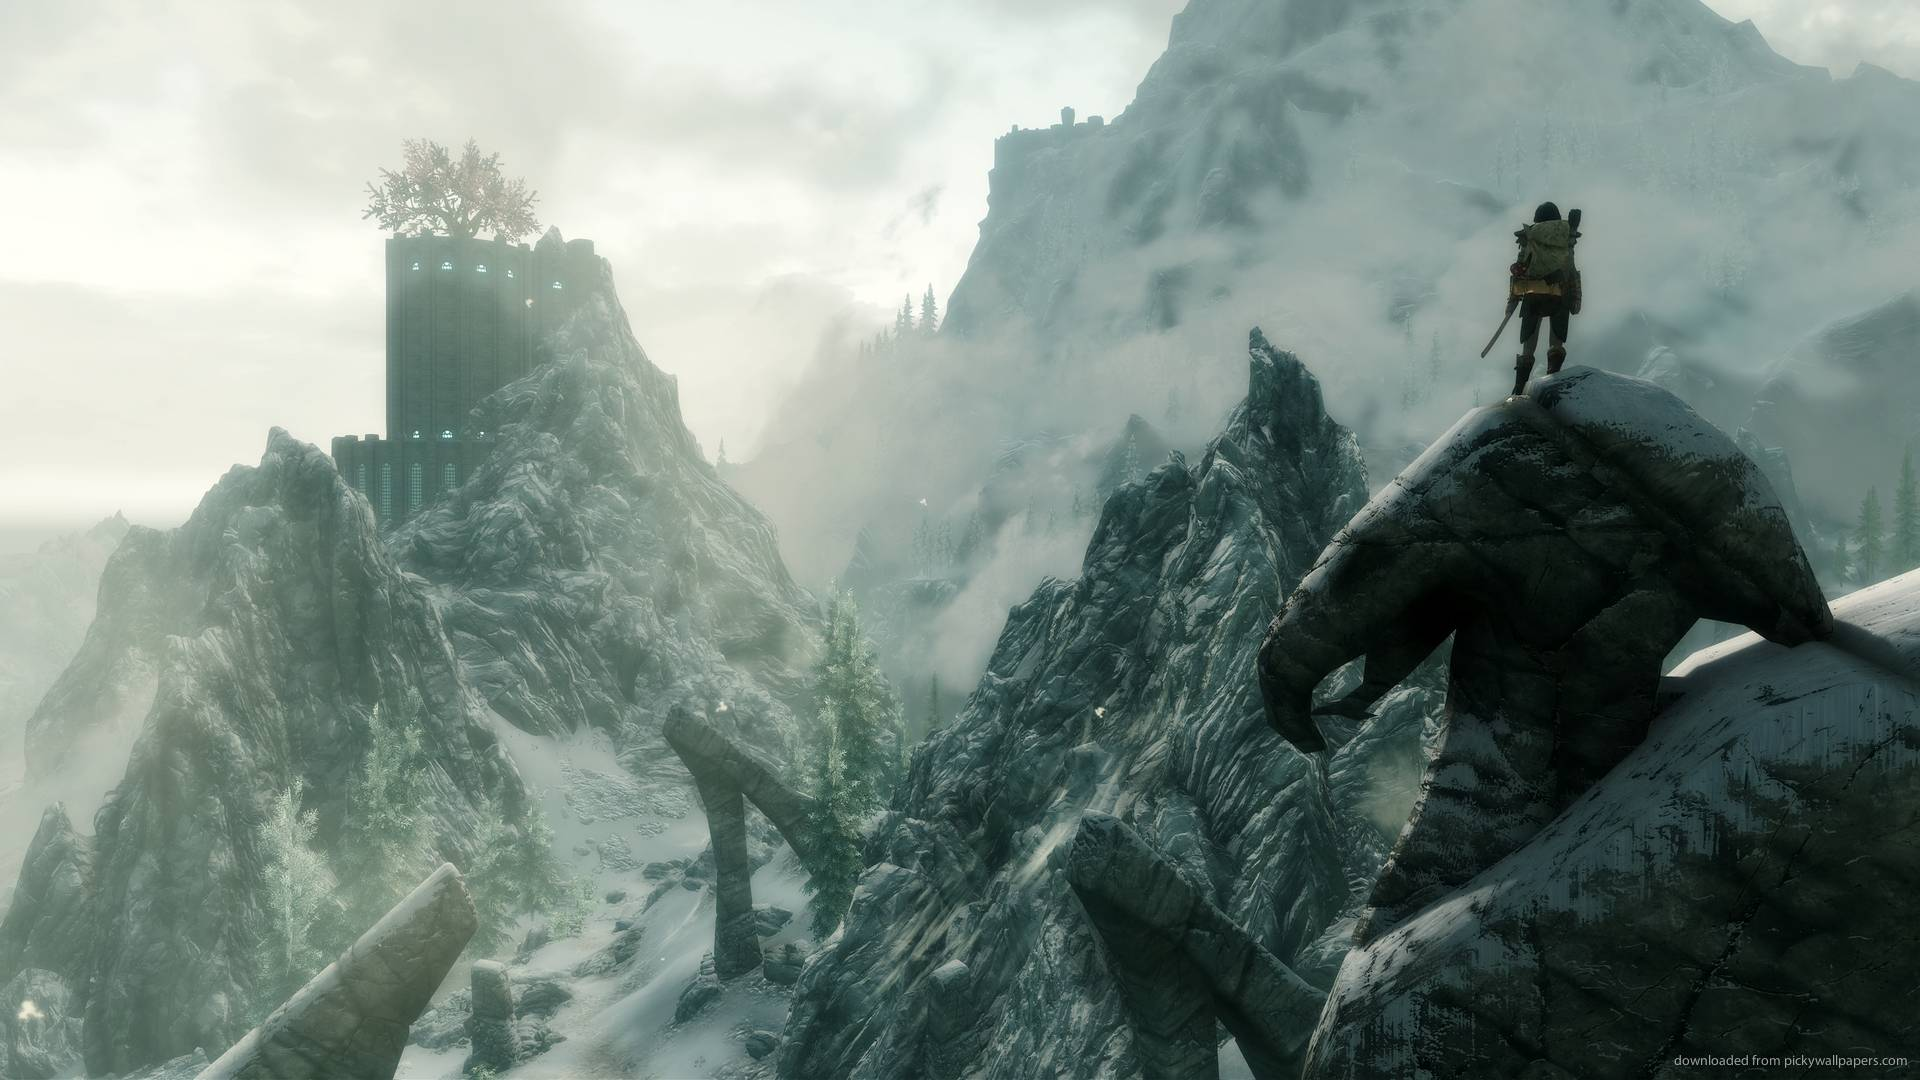 skyrim wallpaper 1920x1080, skyrim hd 4k